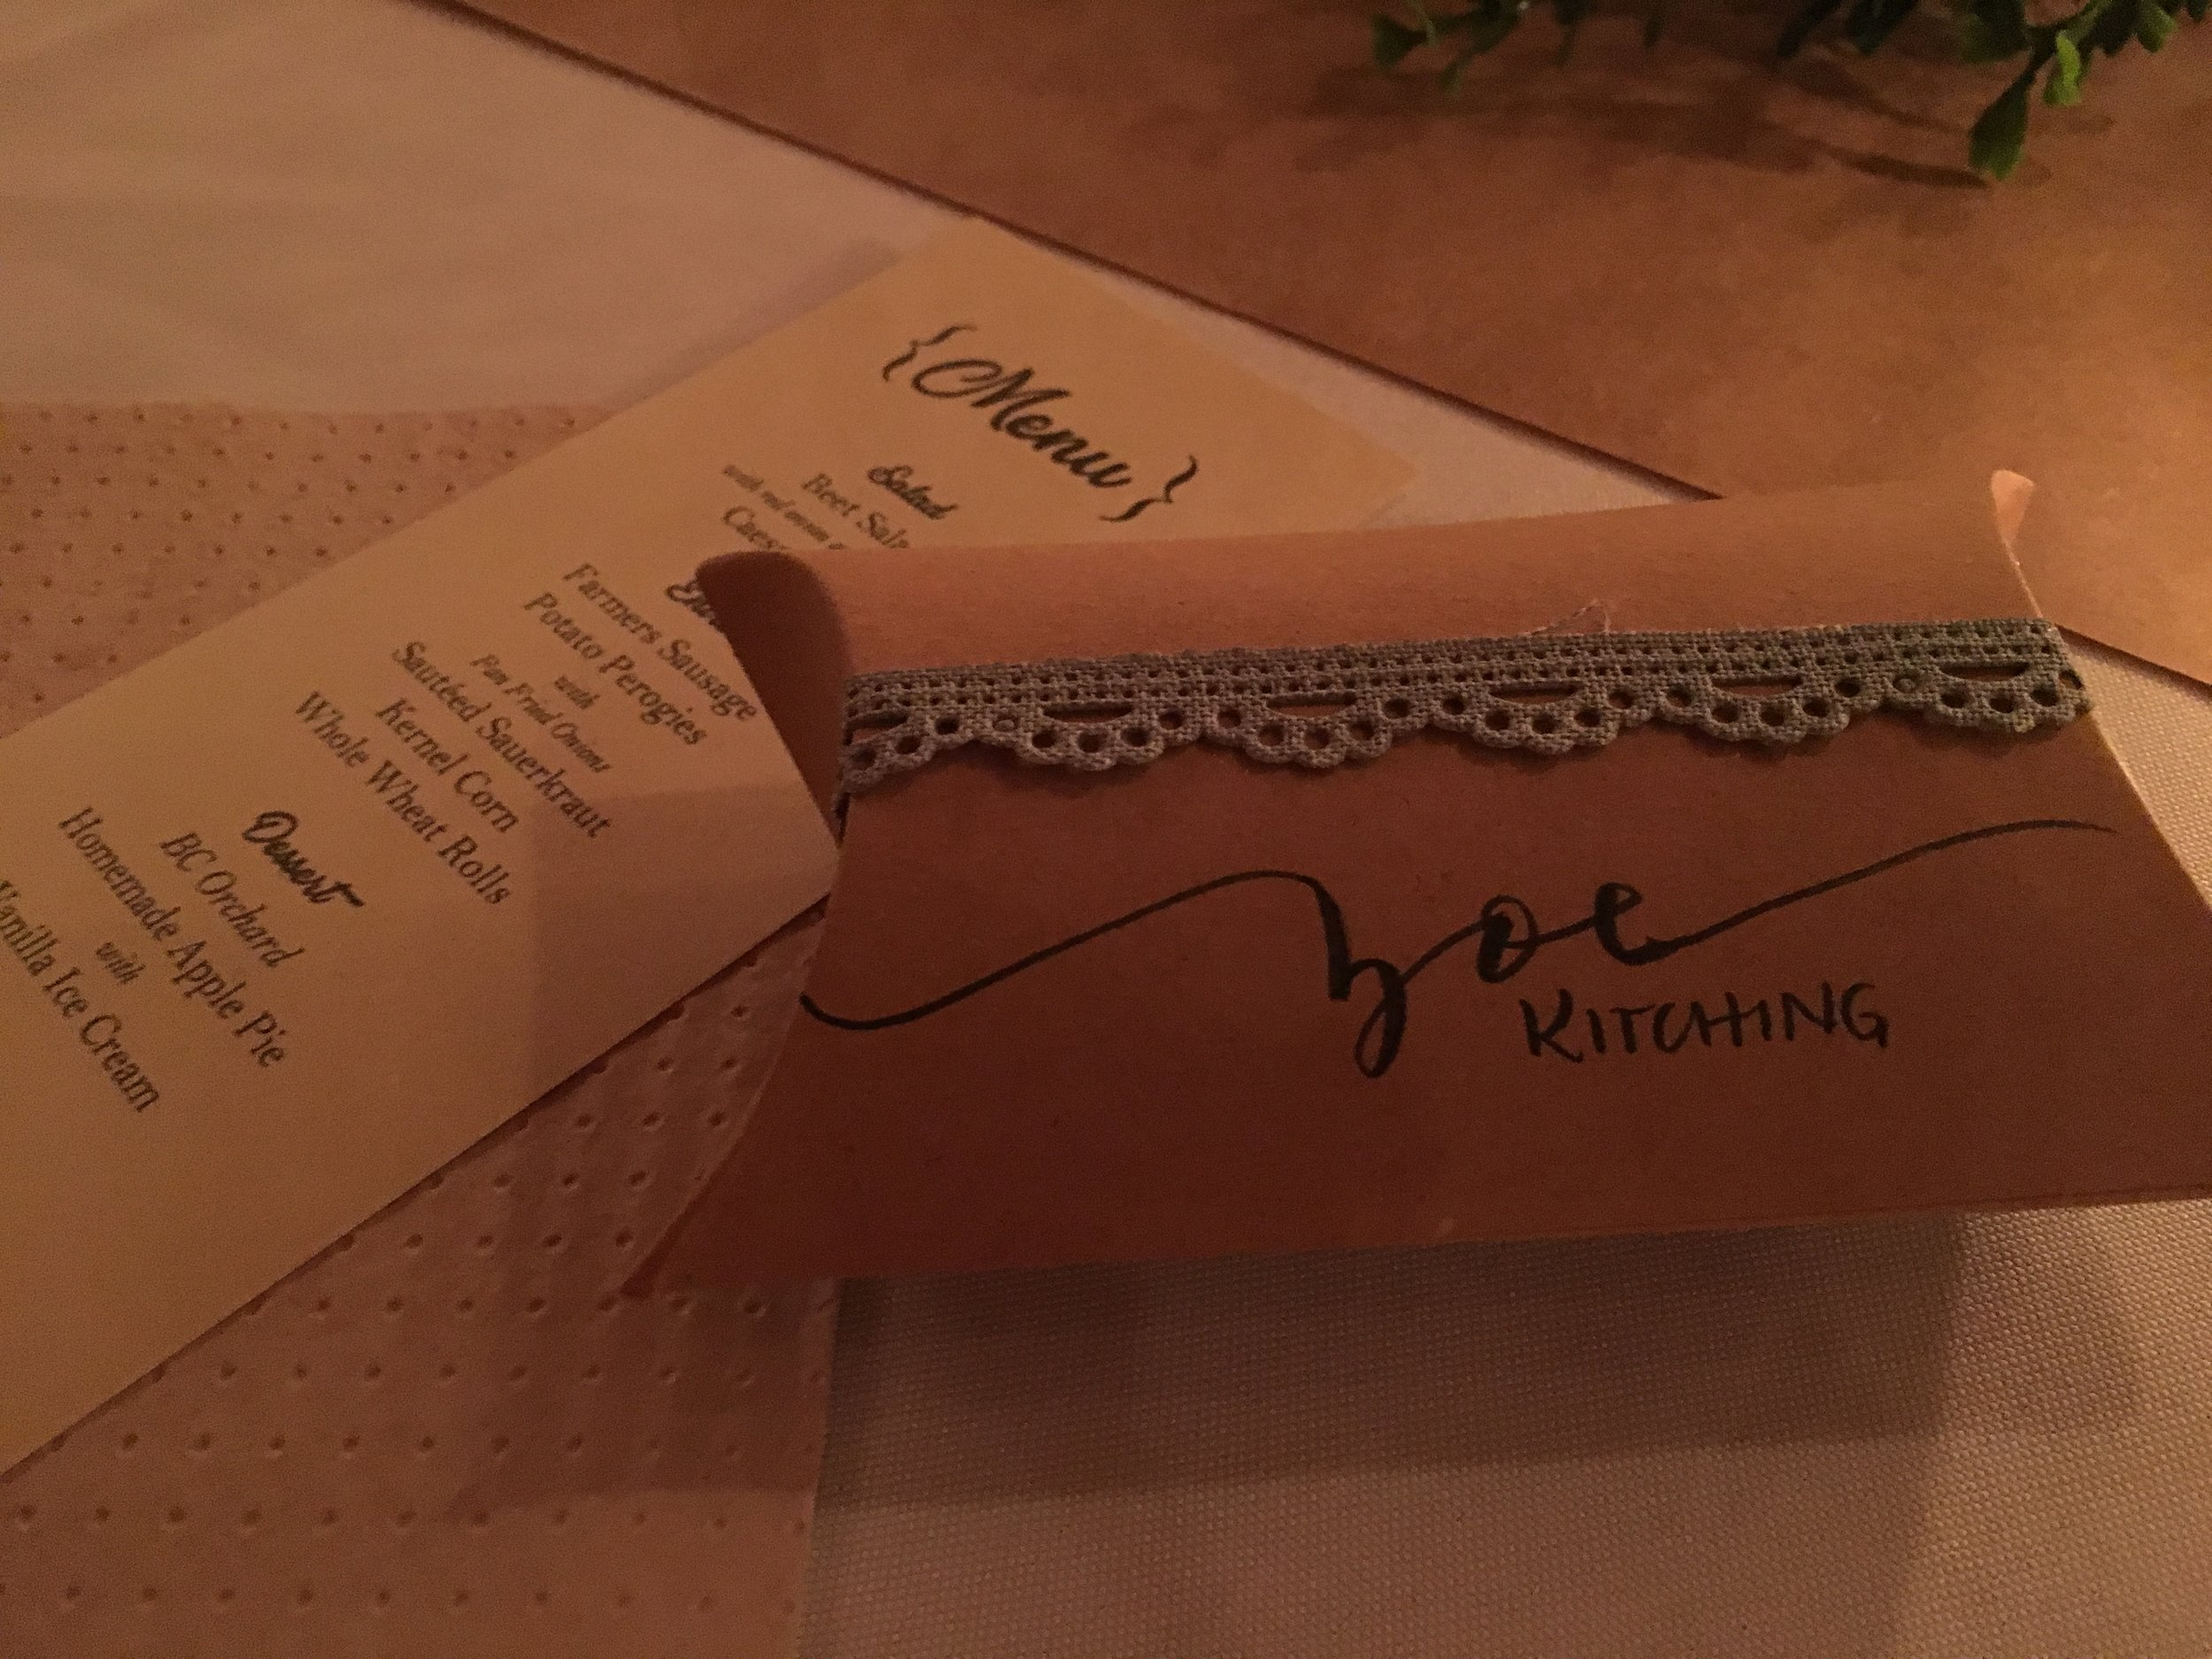 The menu helped us get excited for the food to come ;) and the writing on the favours was (hashtag) goals!